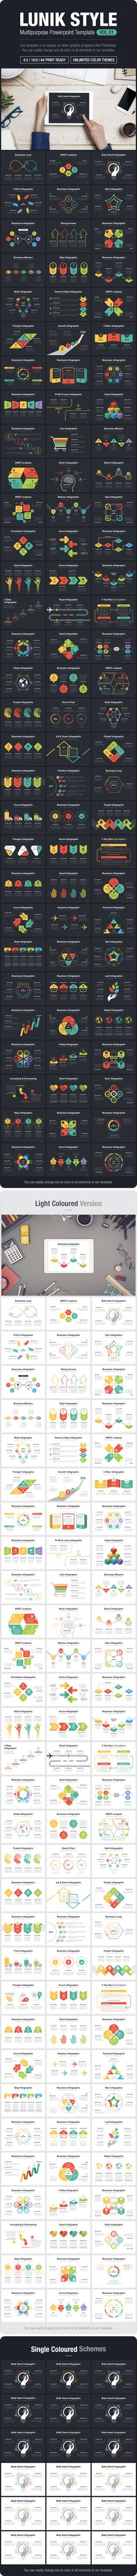 Multipurpose Powerpoint Template. Download here: https://graphicriver.net/item/multipurpose-powerpoint-template-/17339155?ref=ksioks